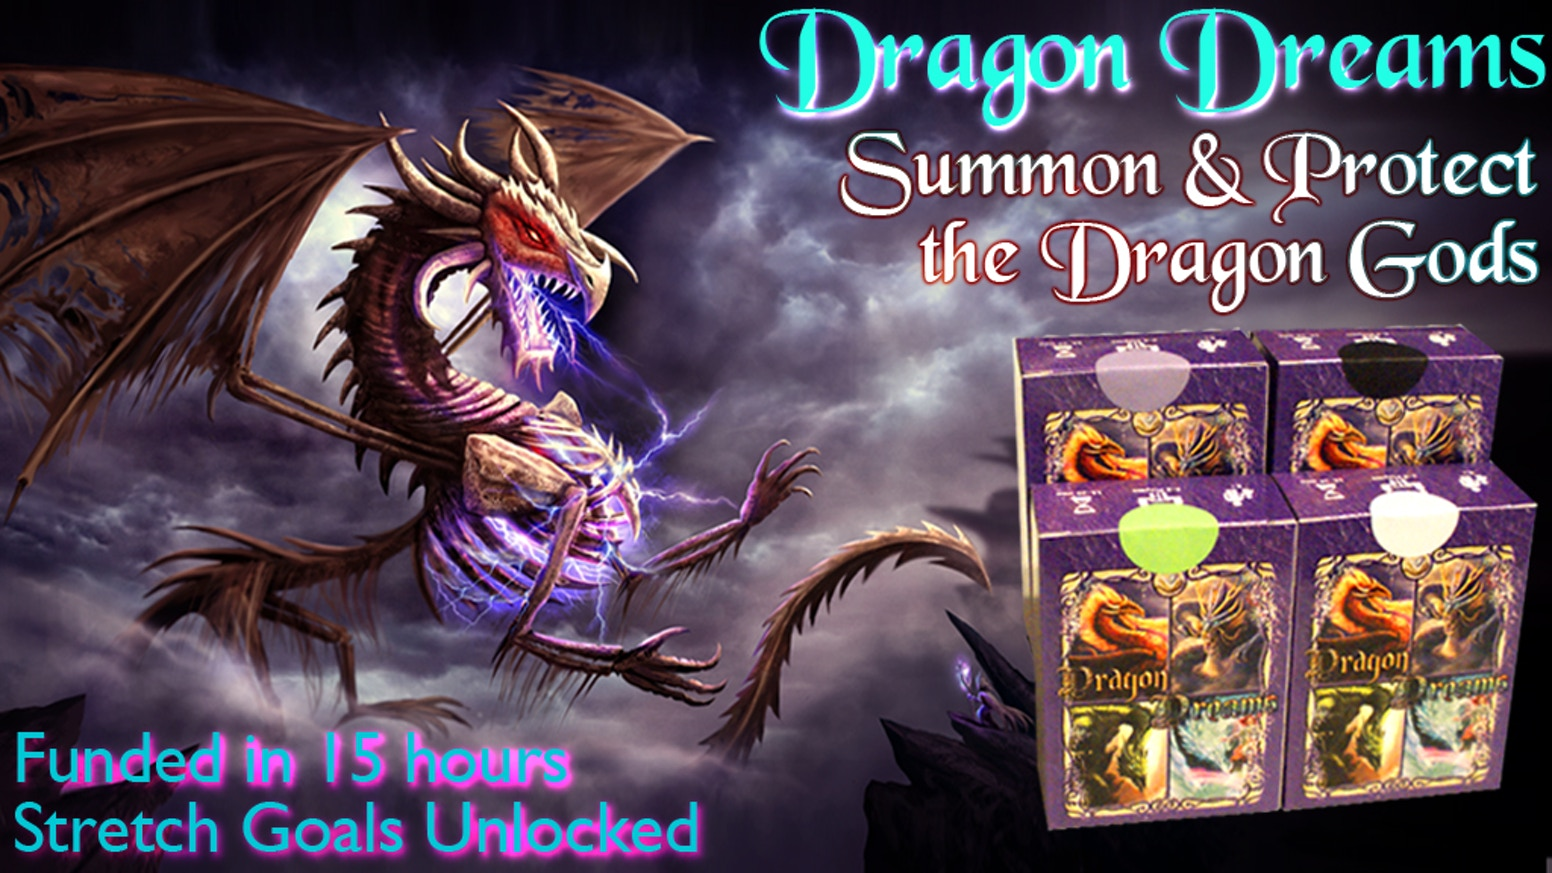 Stand alone and expandable Card Game. Choose 1 of 4 decks or combine all. Choose your Dragon God and dominate. Fast, fun easy to learn.